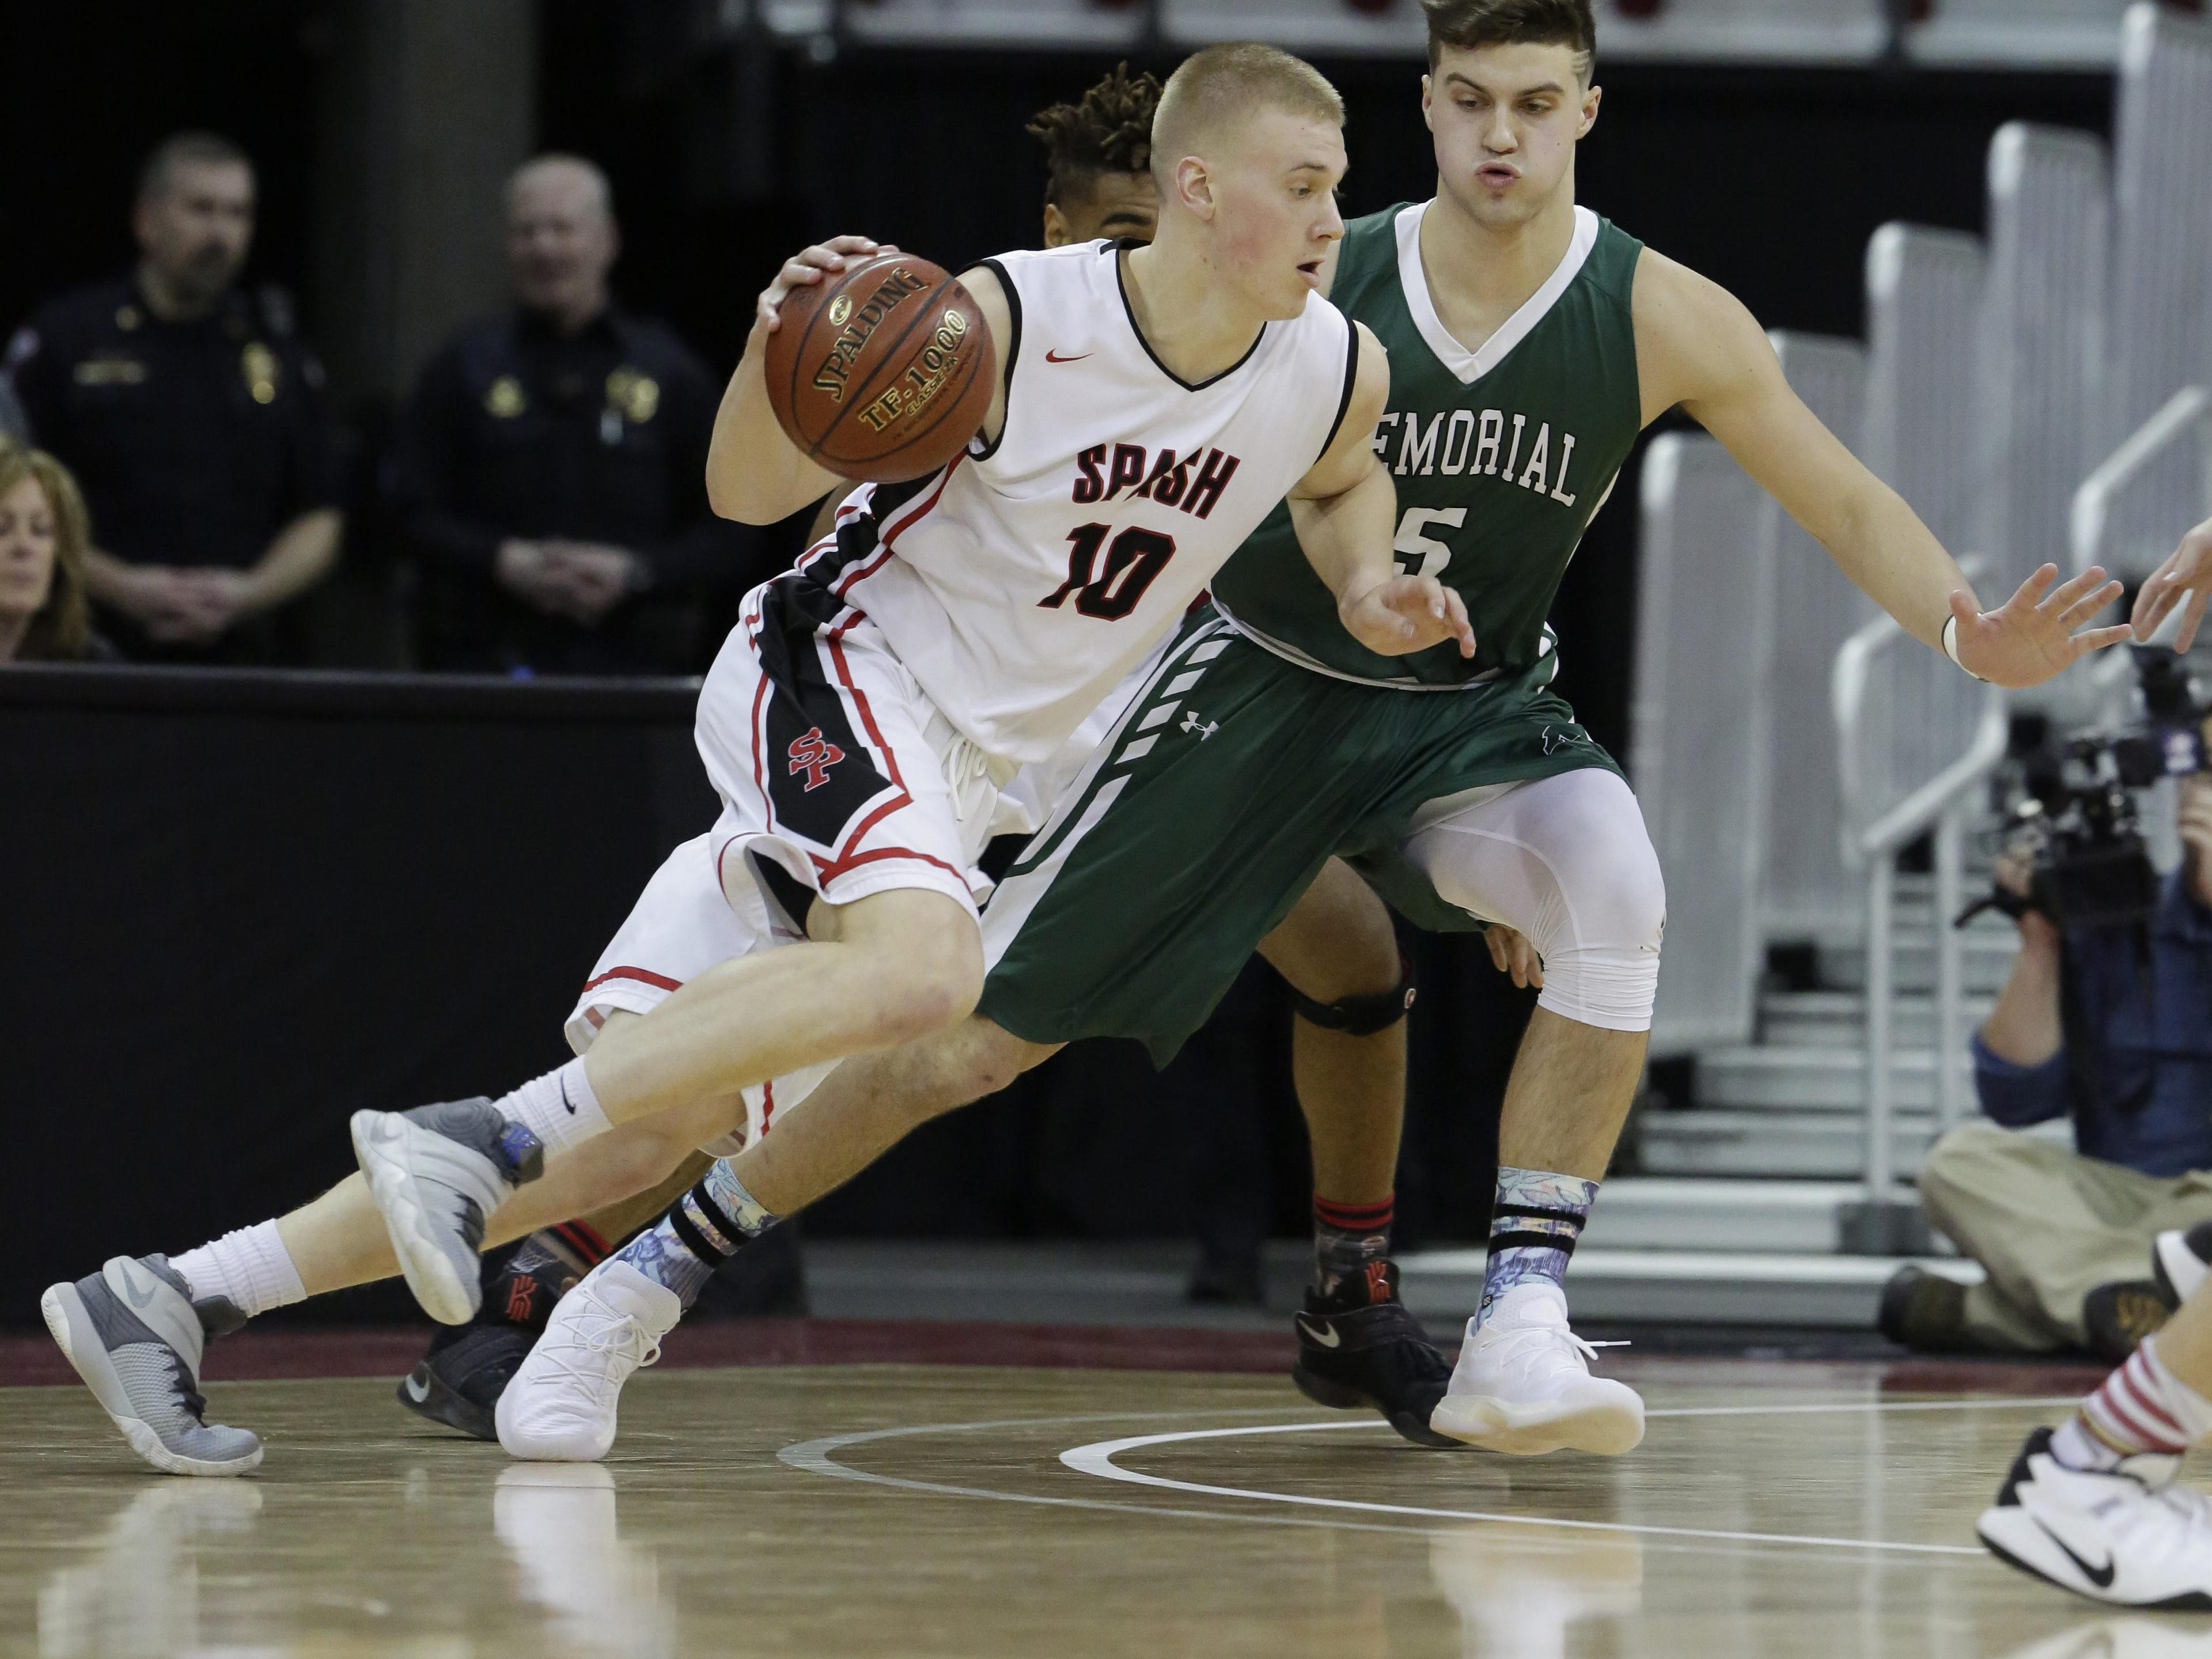 Stevens Point's Joey Hauser dribbles to the inside against Madison Memorial in a WIAA Division 1 state semifinal on Friday at the Kohl Center.